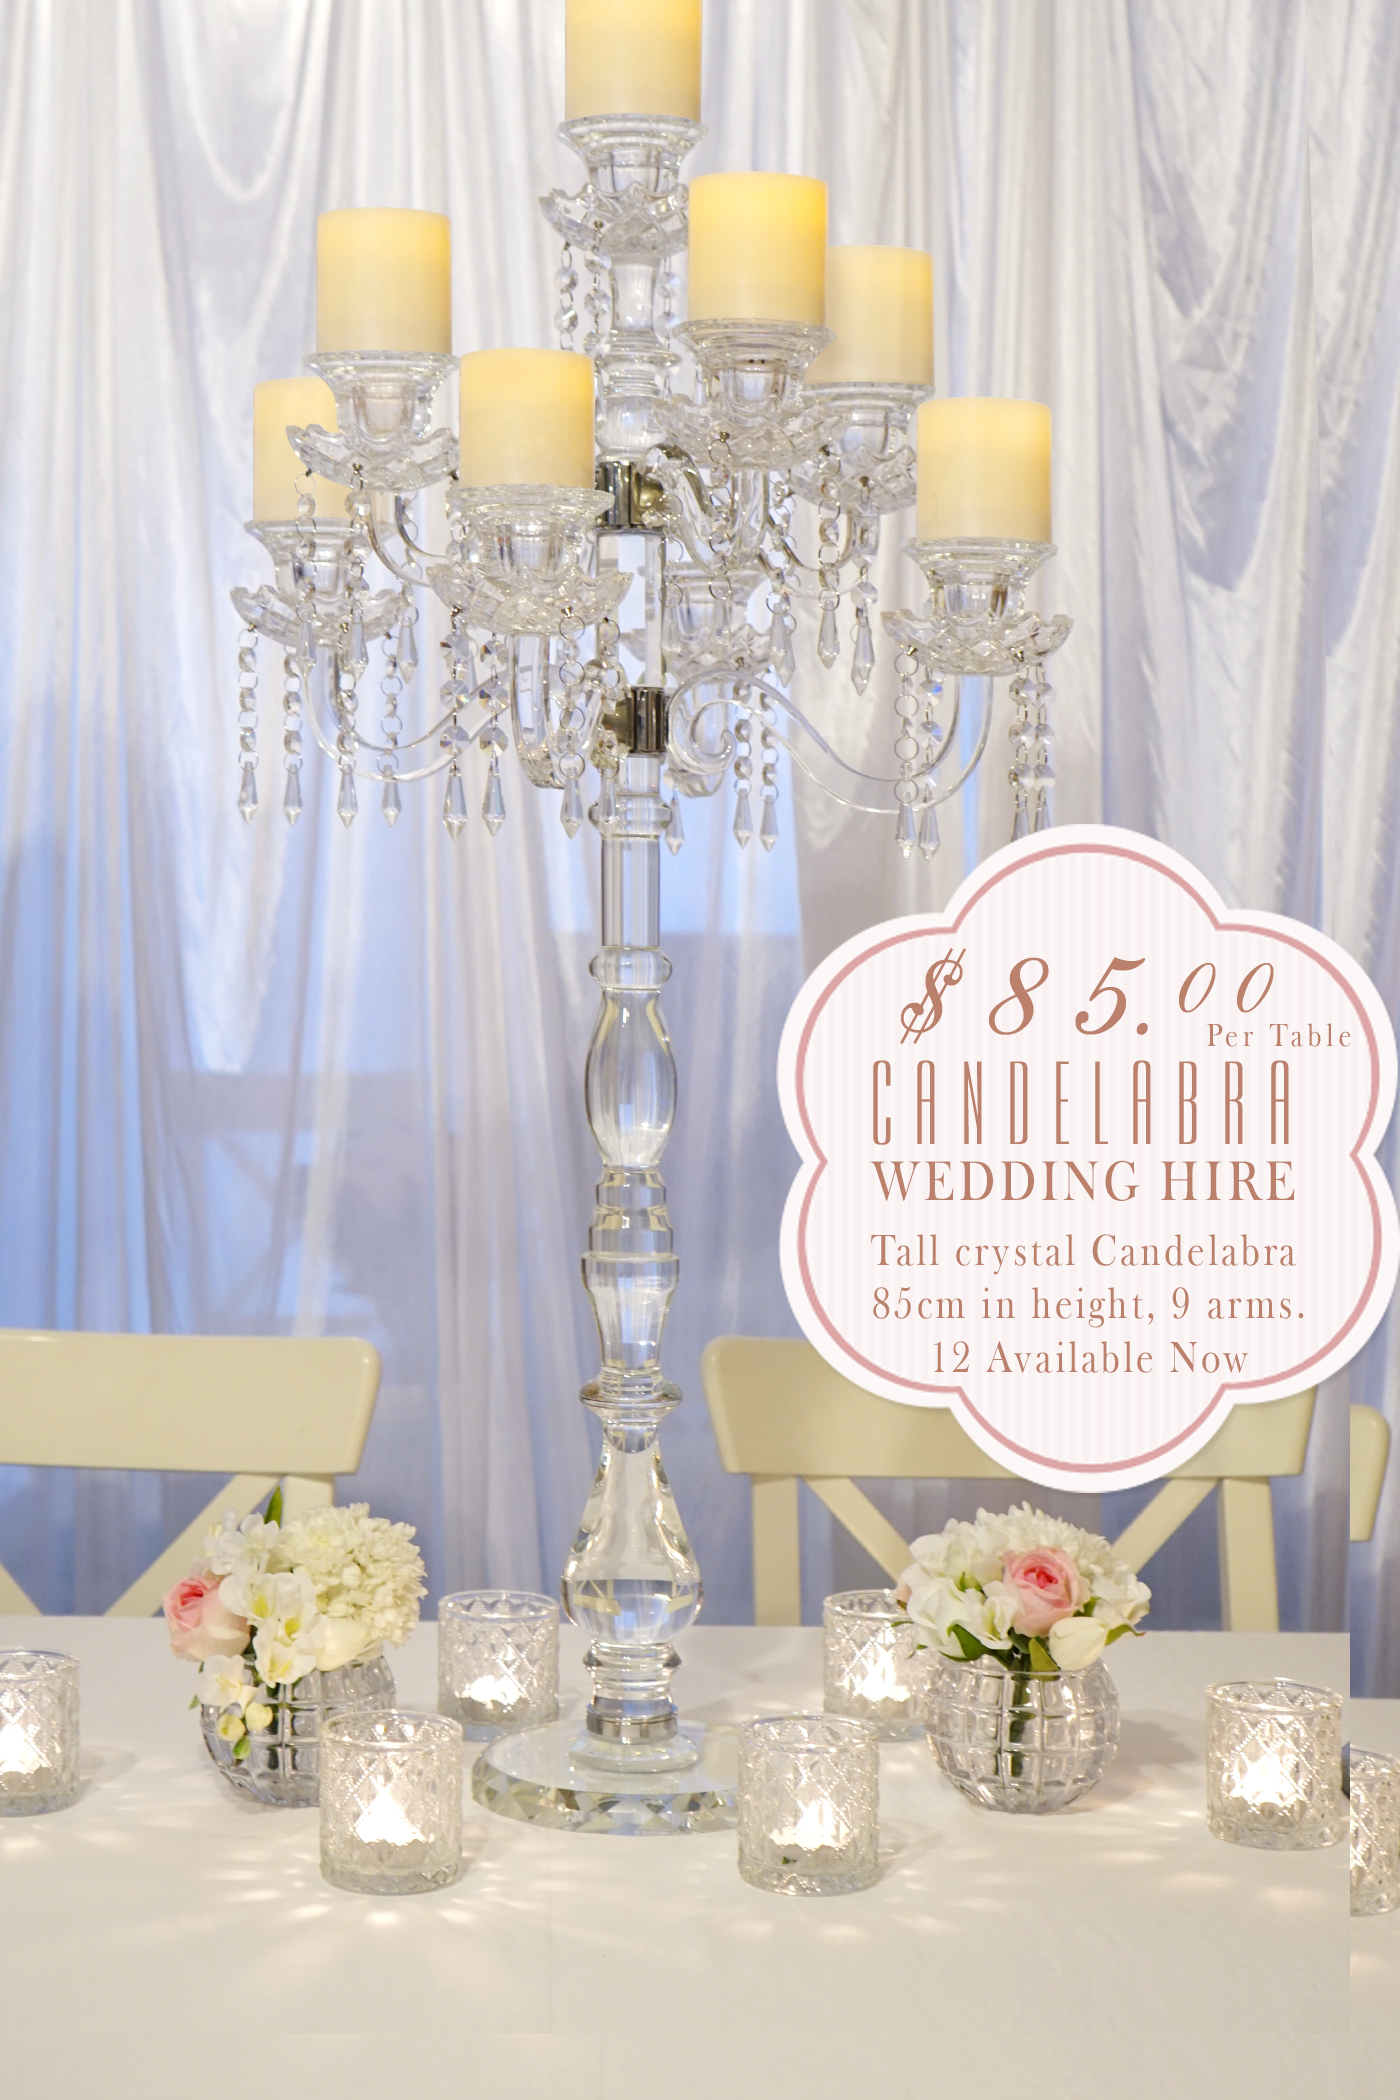 Wedding centerpiece hire wedding decorations by naz our range of beautiful wedding centrepiece hire and table decor available to hire our wedding and event centrepieces include round mirror bases junglespirit Gallery